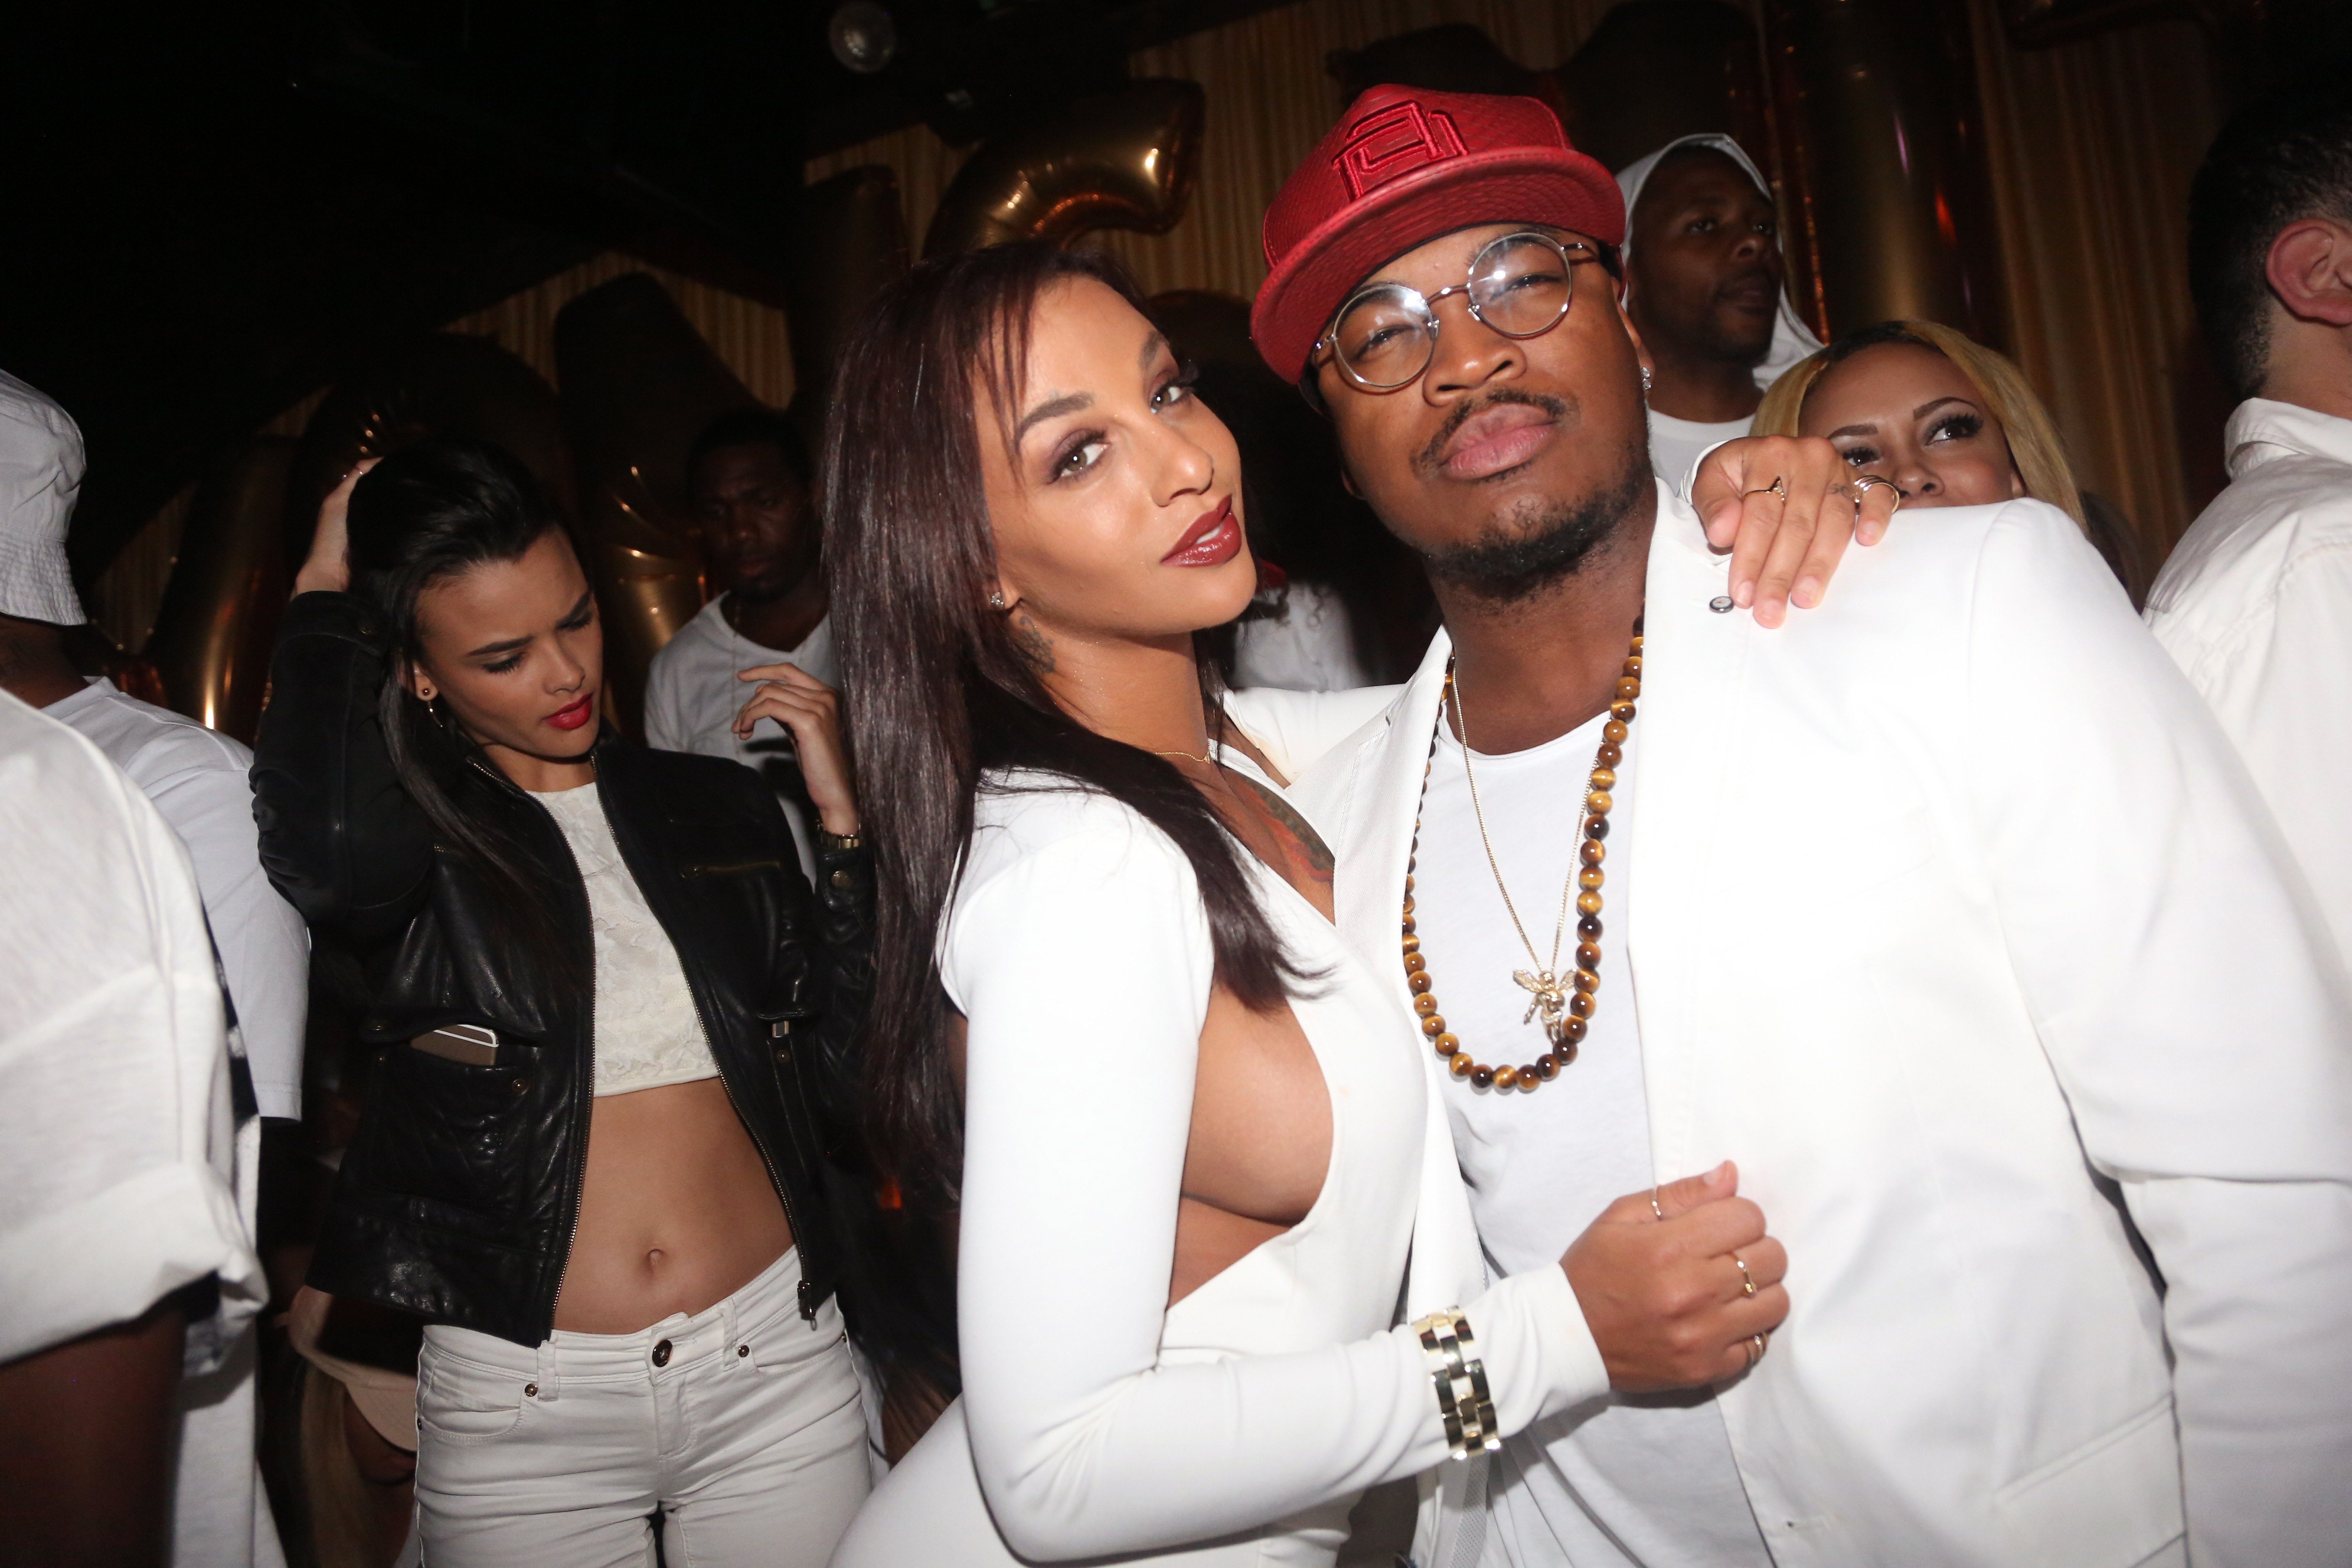 Ne-Yo and Crystal Smith at Von Smith's birthday celebration in June 2015 in New York City. | Photo: Getty Images